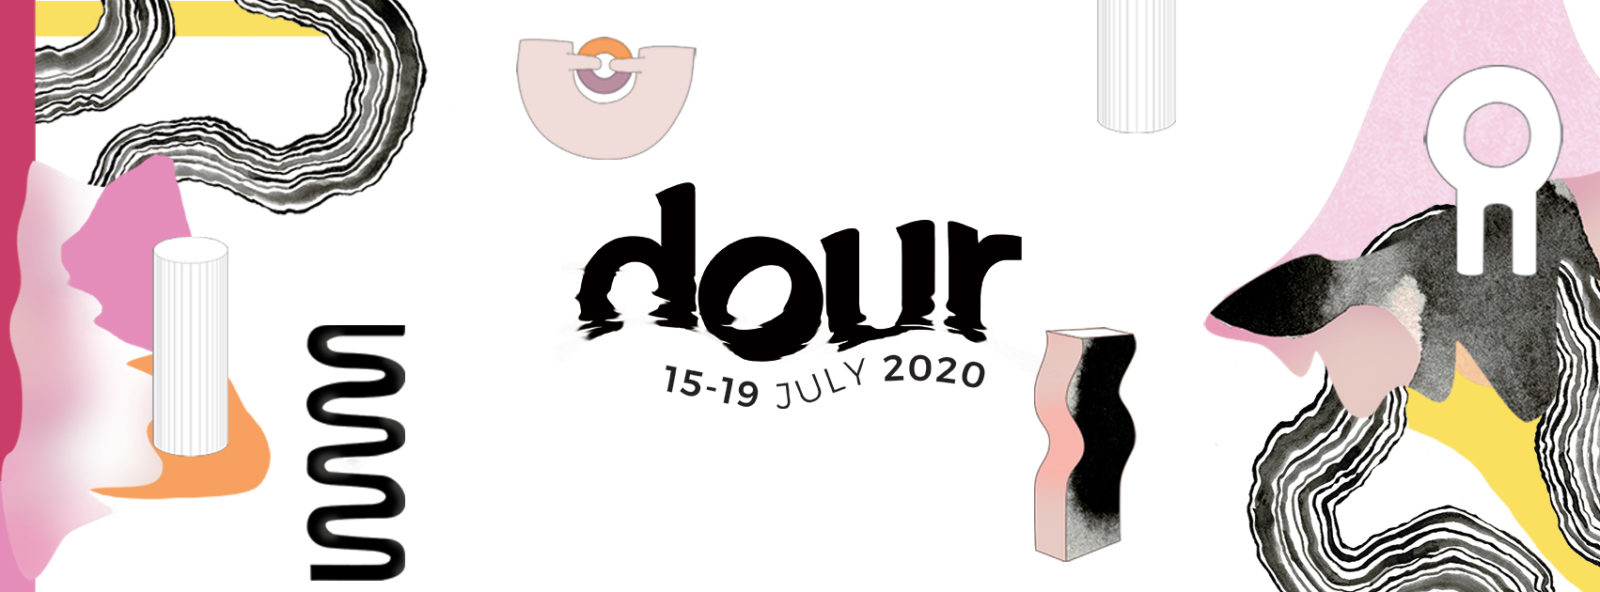 Dour Festival is back from the 15 to the 19 July, 2020 with a new graphic design and two brand new stages: La Chaufferie and Le Garage!